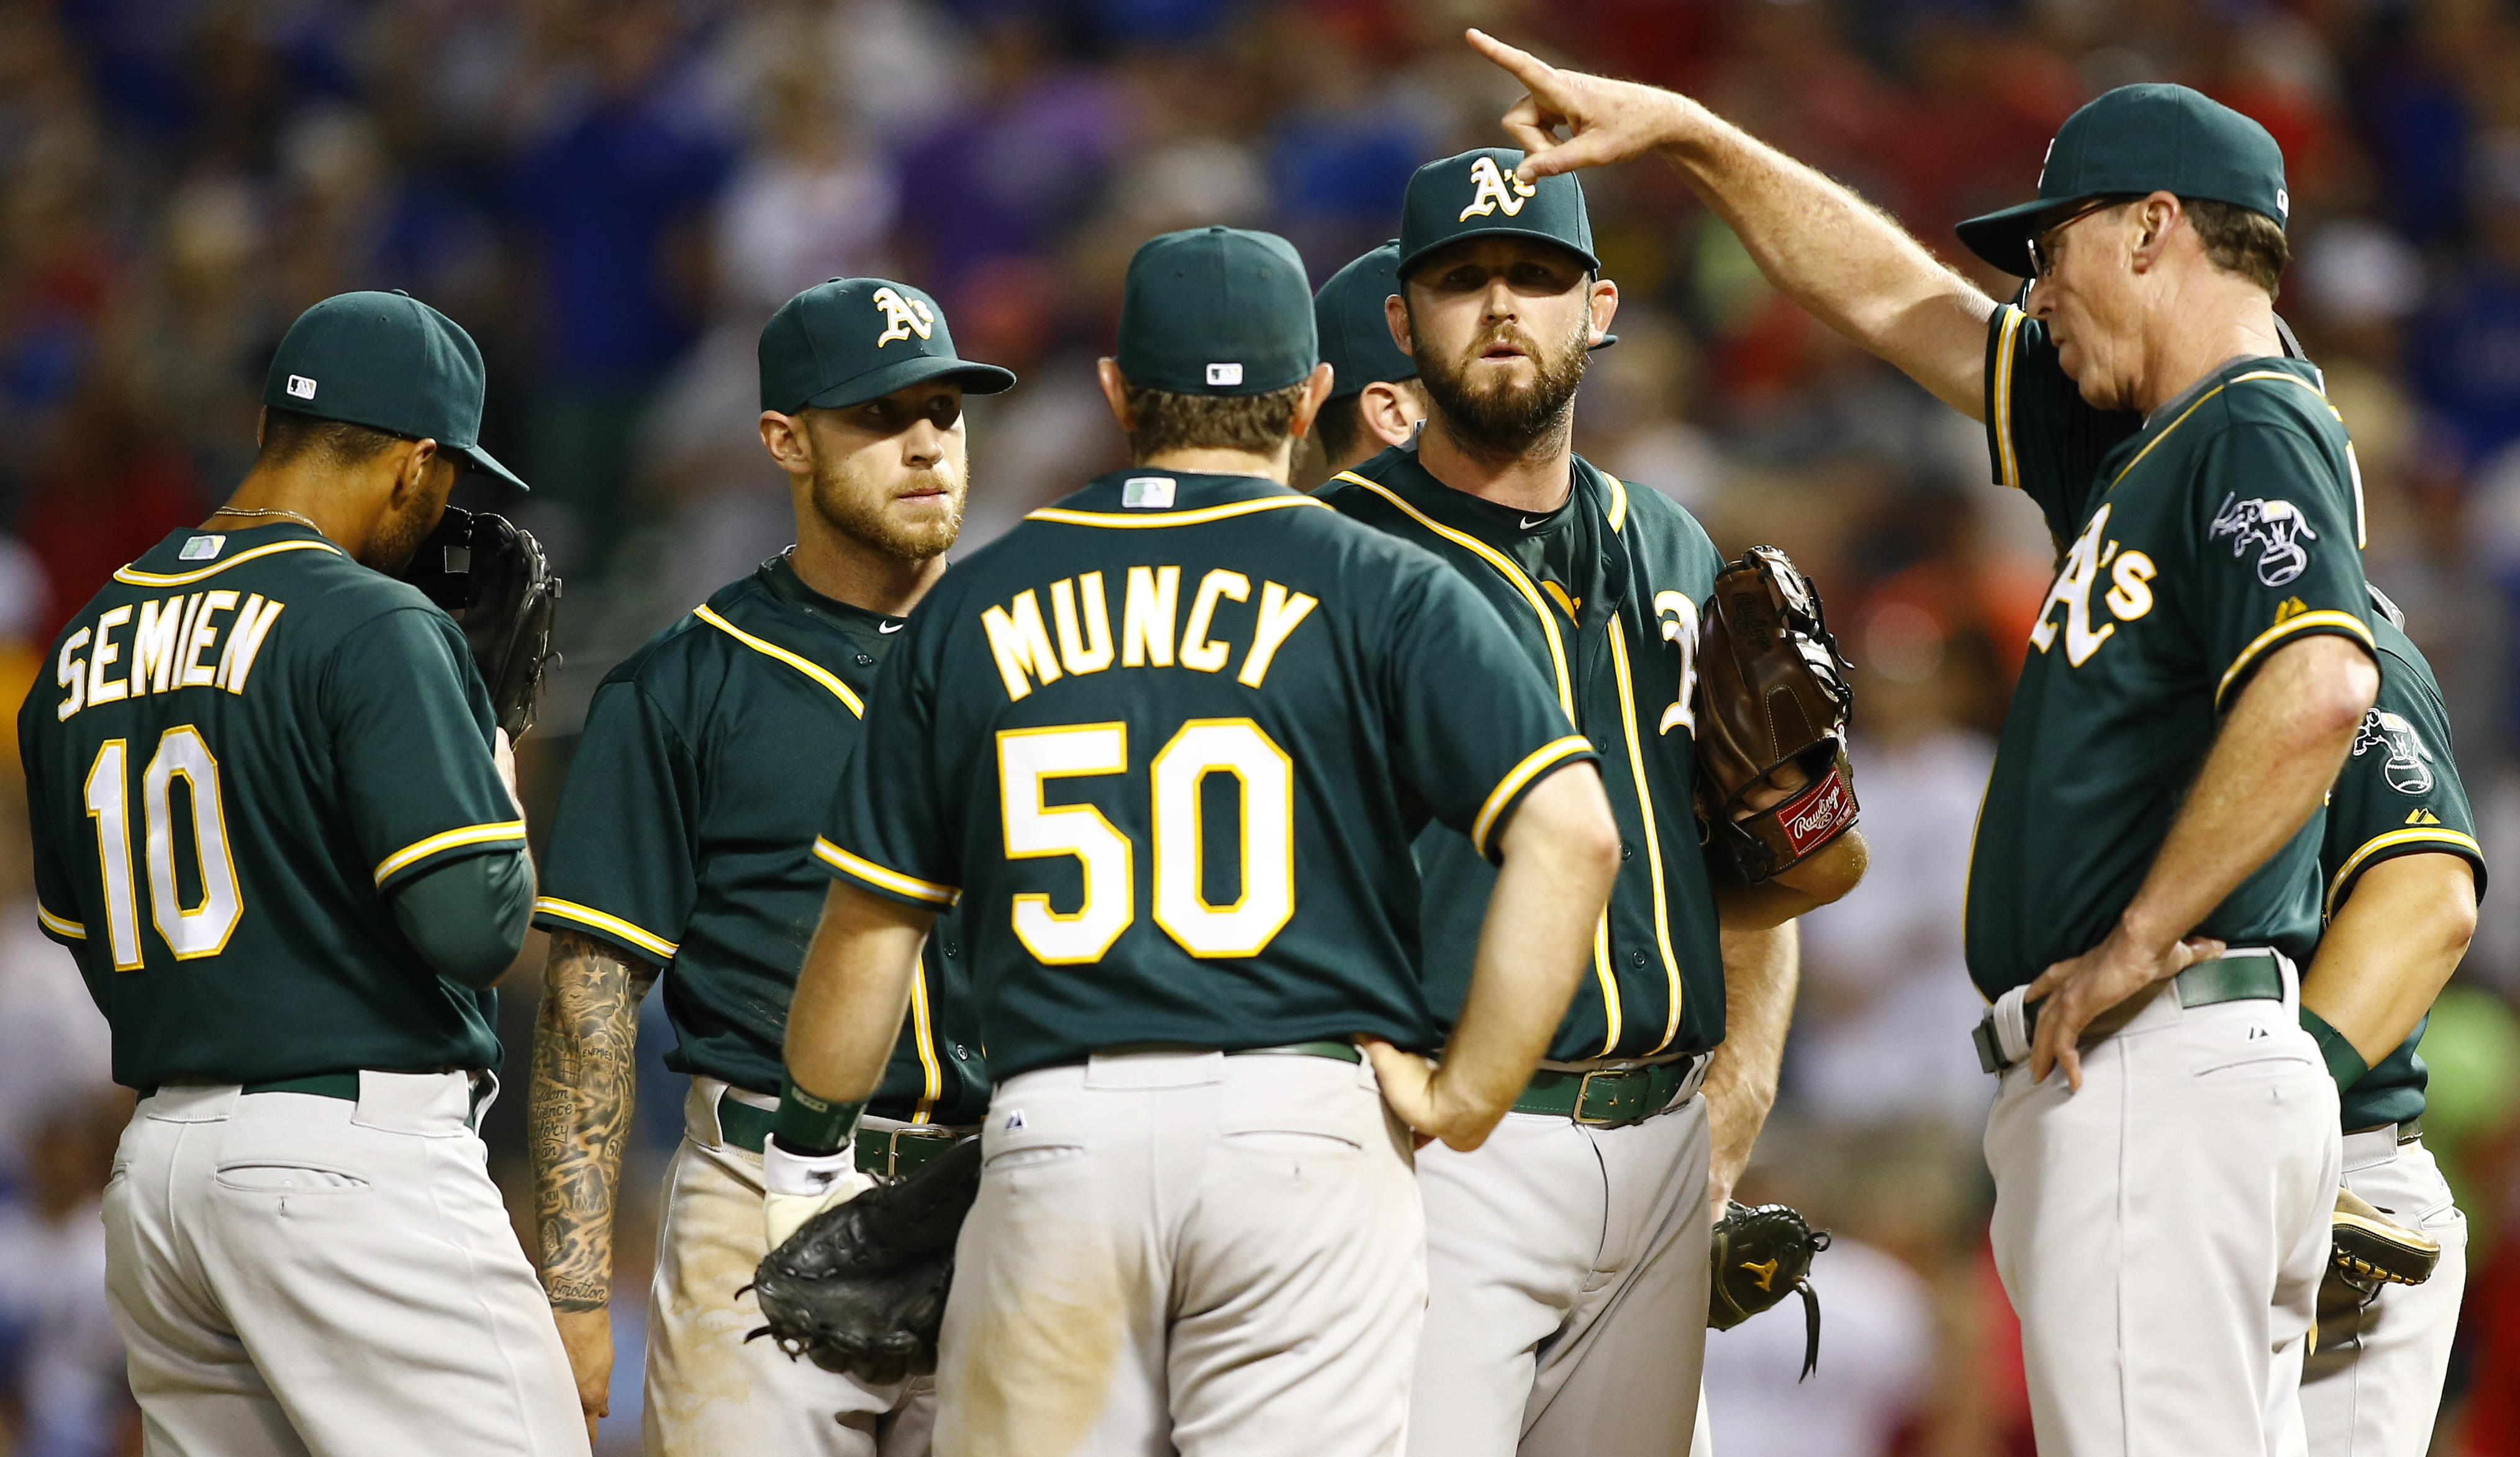 FILE - In this May 2, 2015, file photo, Oakland Athletics manager Bob Melvin signals to the bullpen as pitcher Ryan Cook, second from right, is removed from the lineup against the Texas Rangers in the tenth inning of a baseball game, in Arlington, Texas.